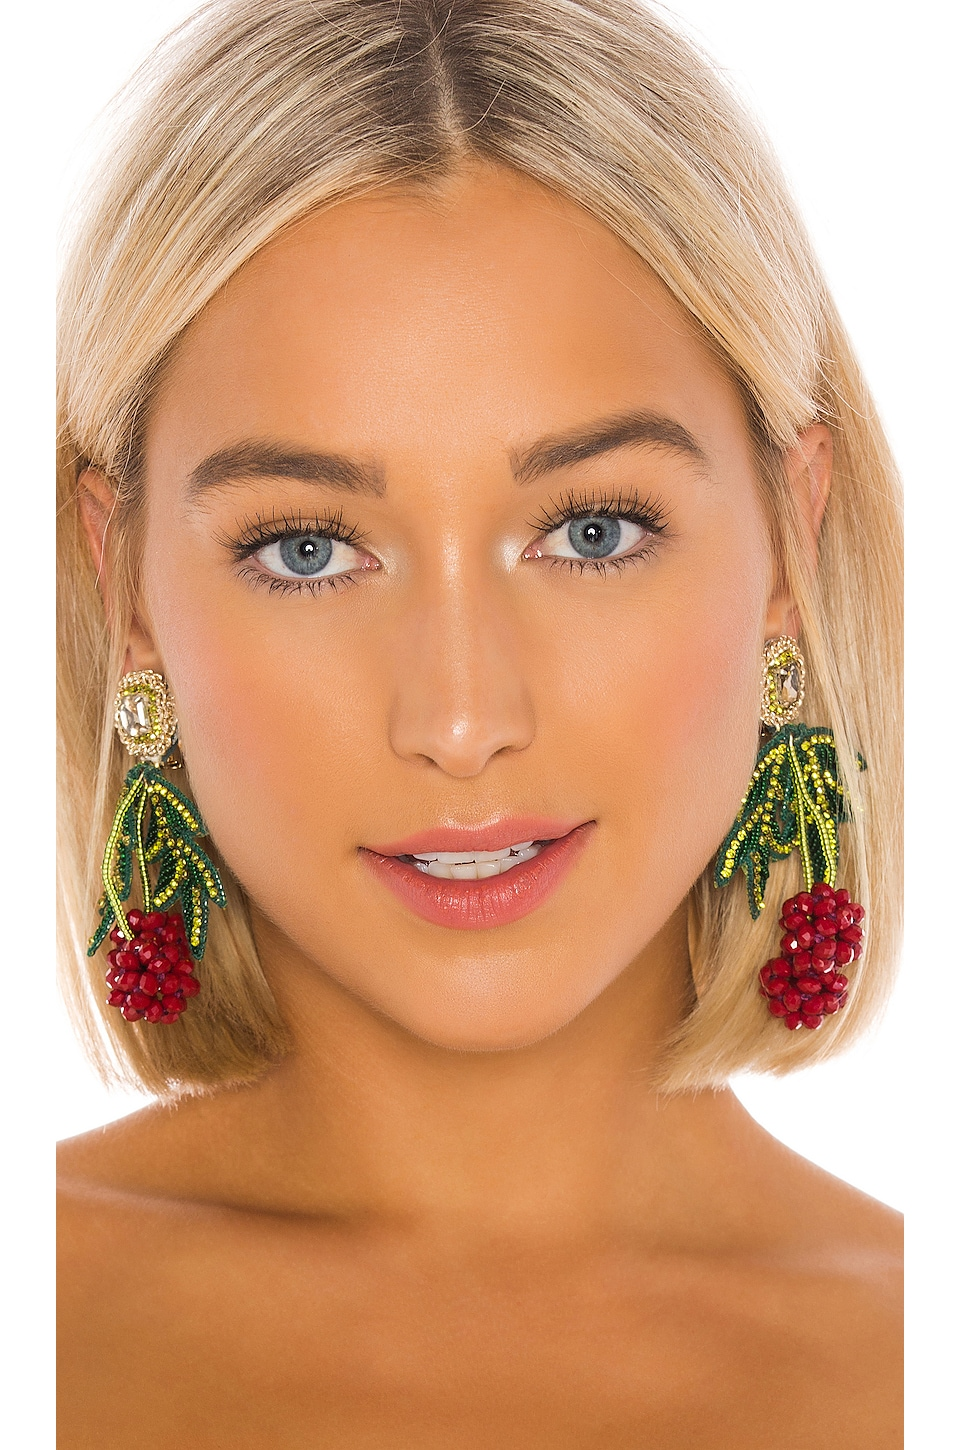 Ranjana Khan Les Framboises Earring in Red & Green